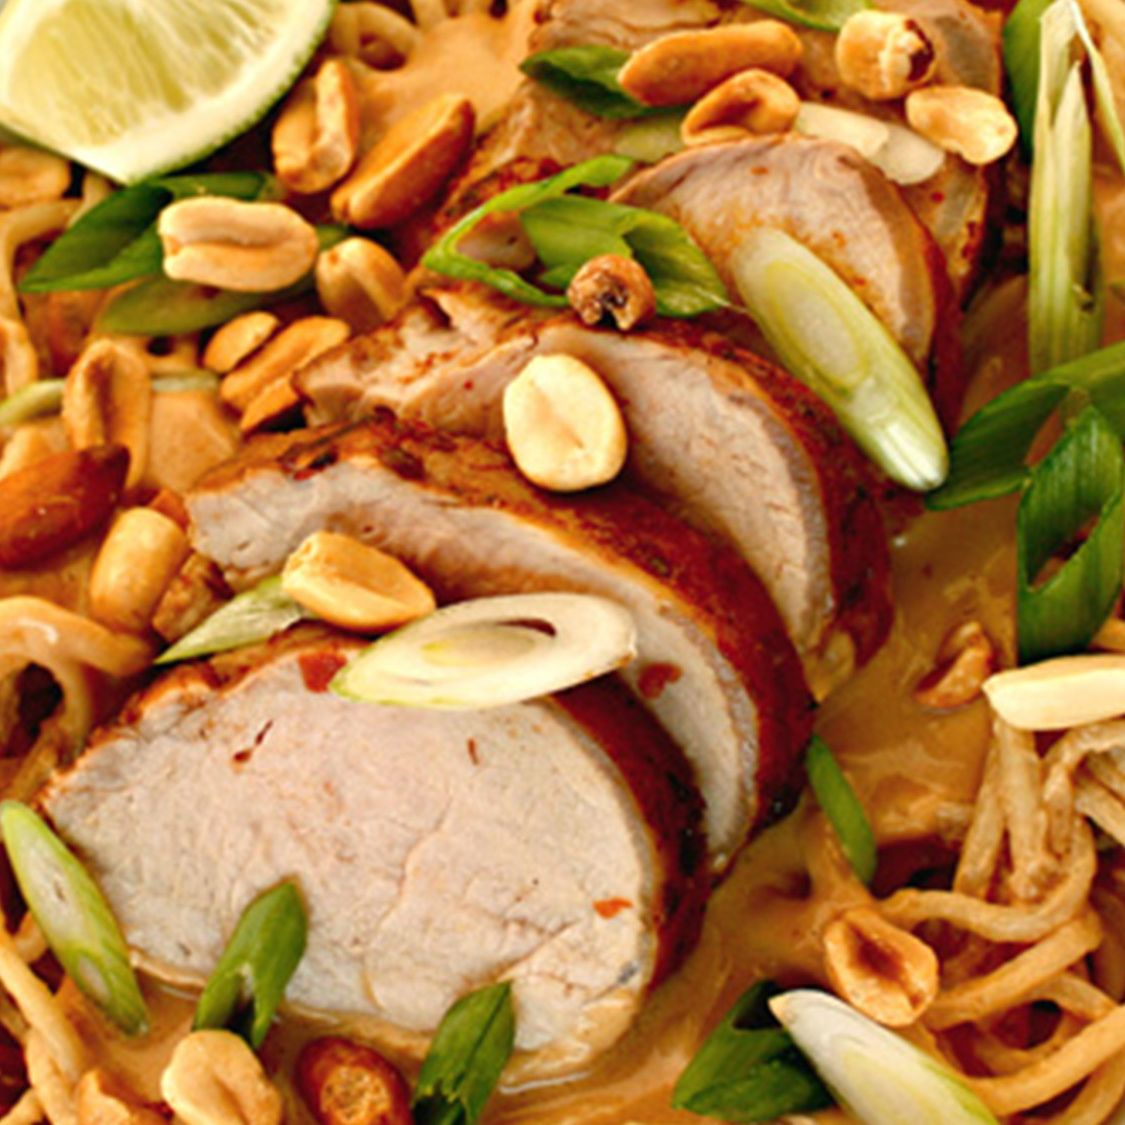 asian_style_noodles_with_roast_pork_and_peanut_sauce.jpg